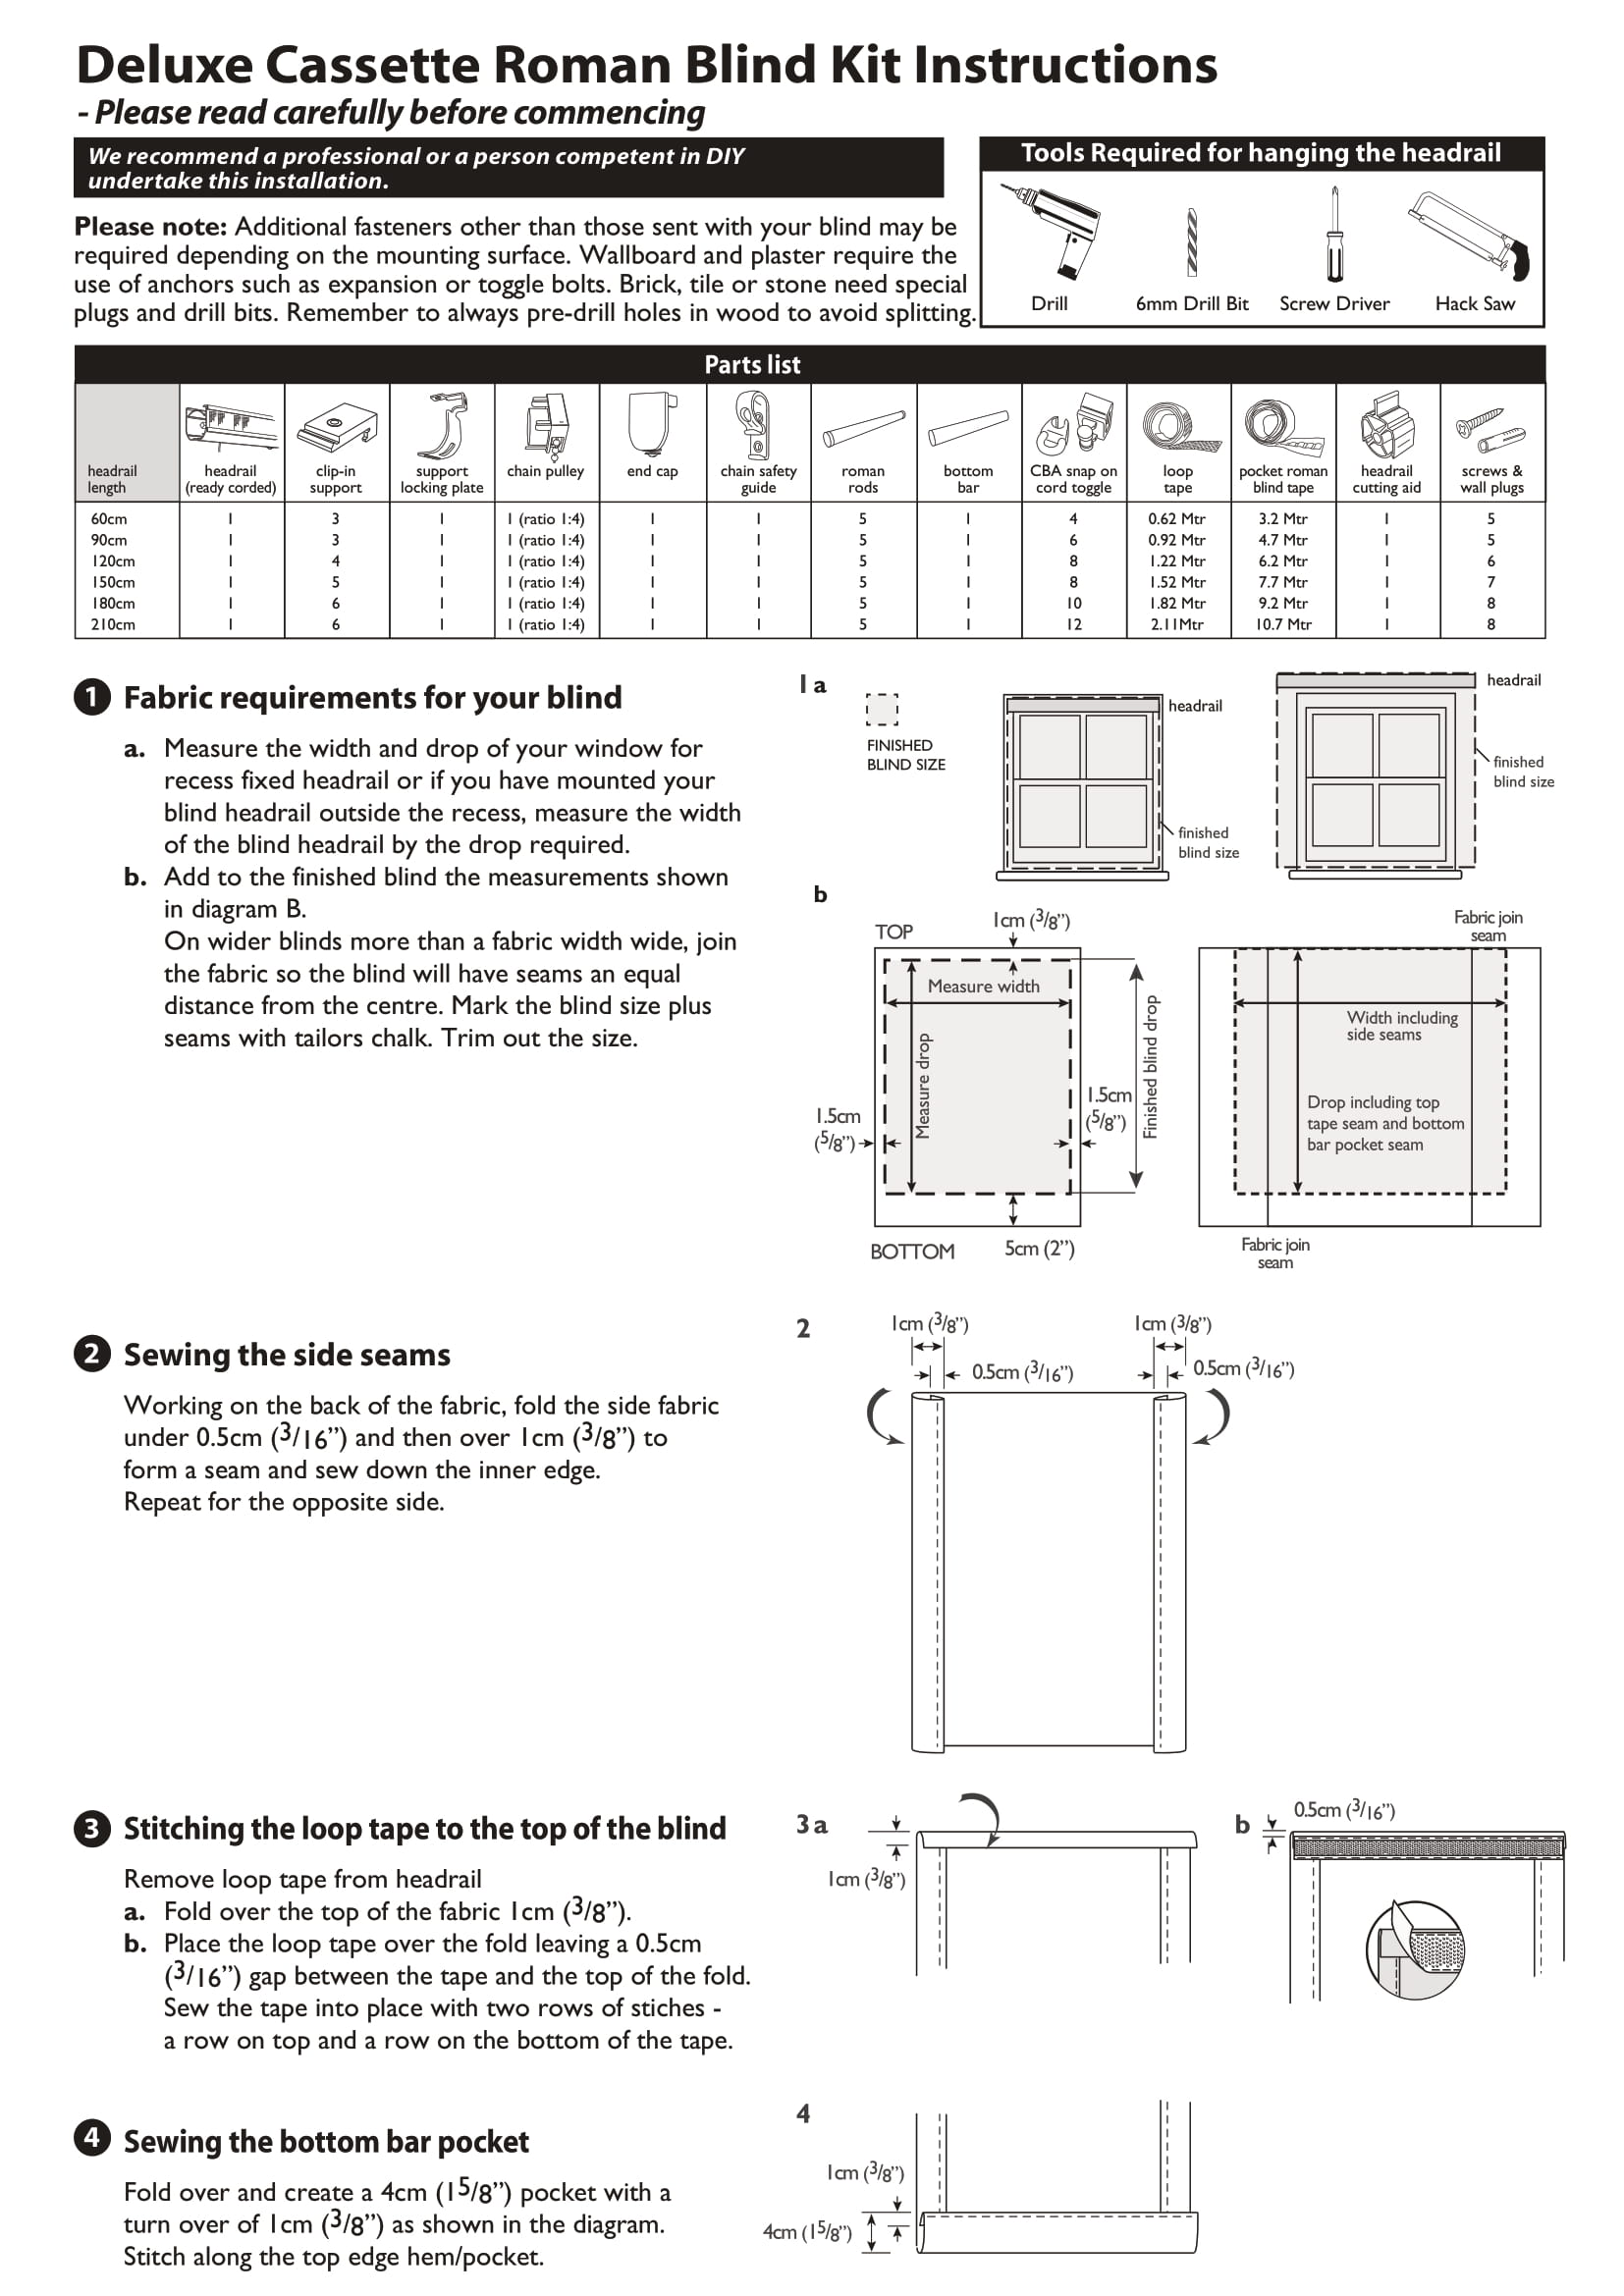 Deluxe Pvc Roman Blind Kit Fitting Instructions One